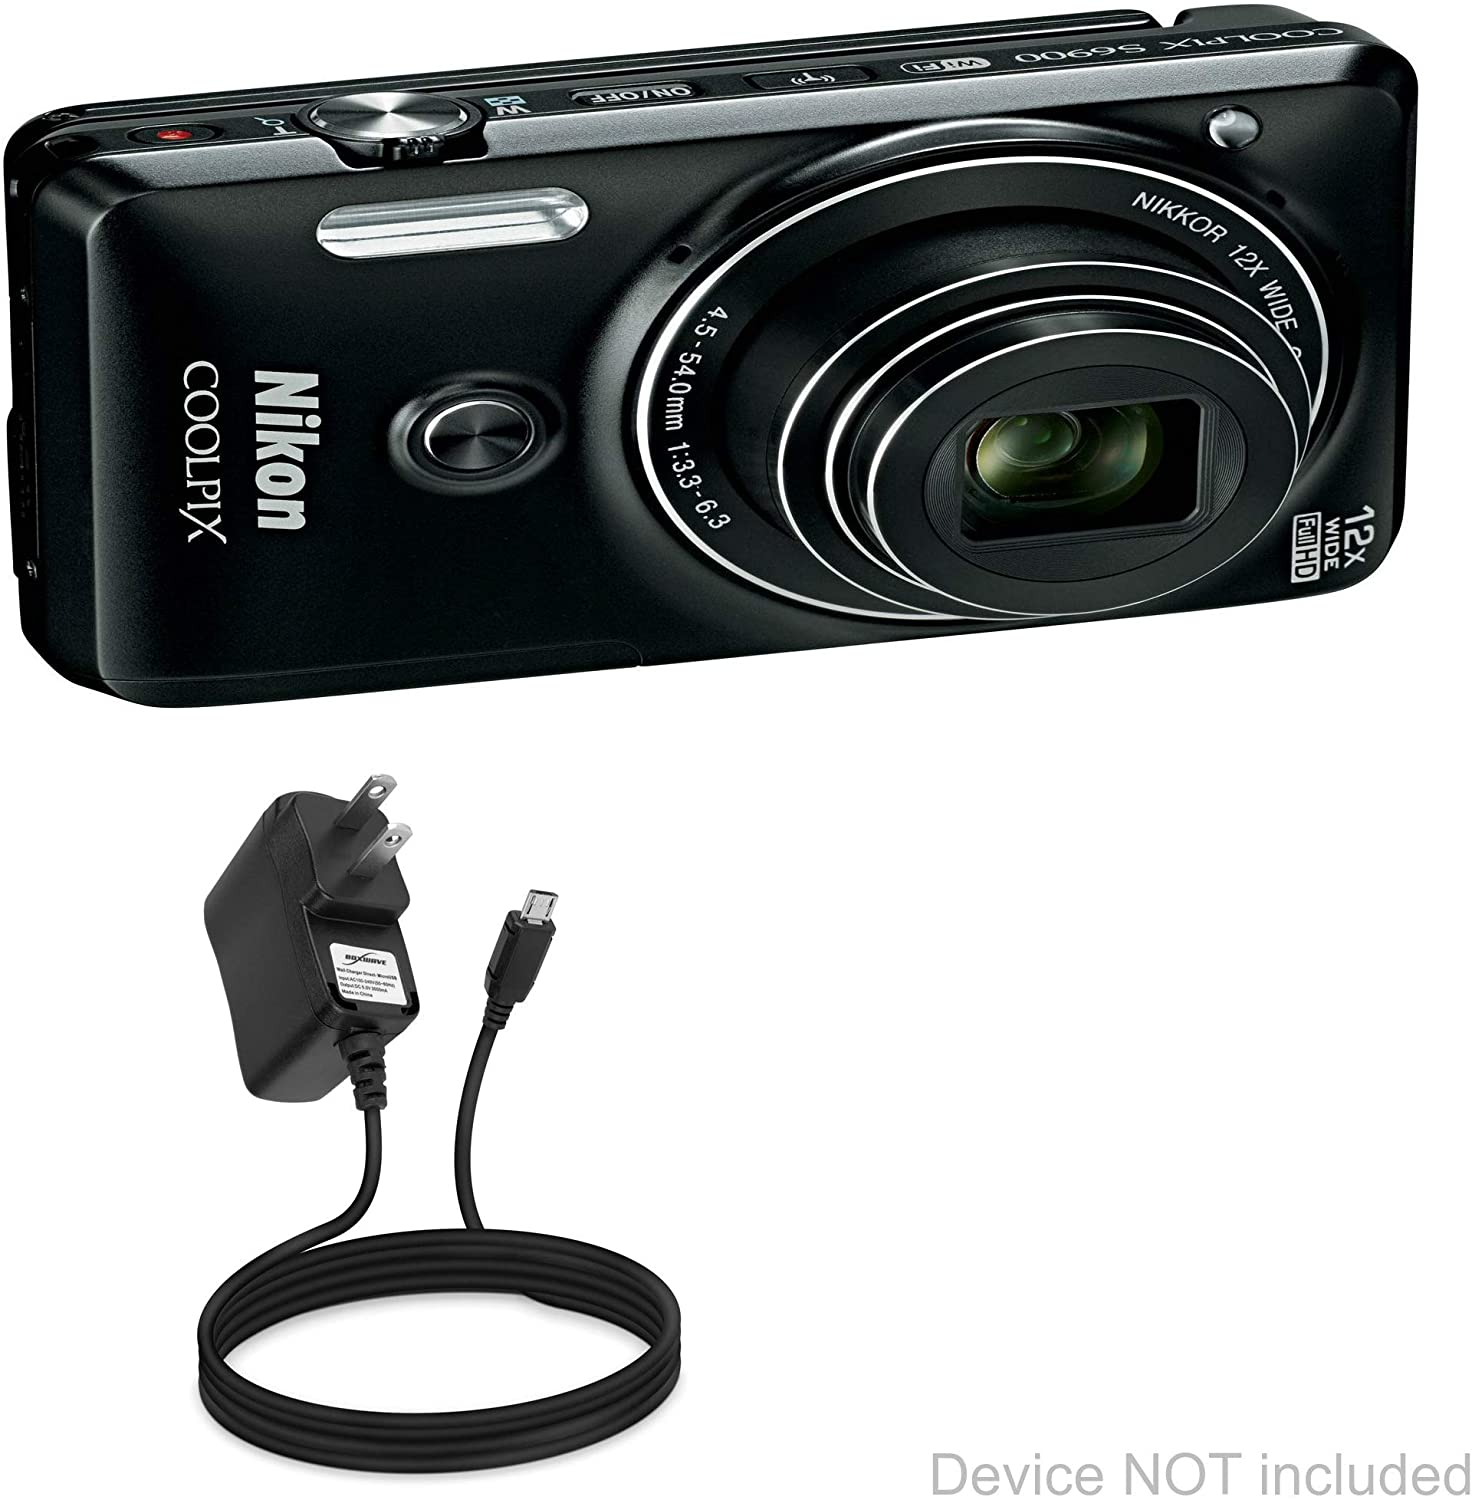 Nikon Coolpix S6900 Charger, BoxWave [Wall Charger Direct] Wall Plug Charger for Nikon Coolpix S6900